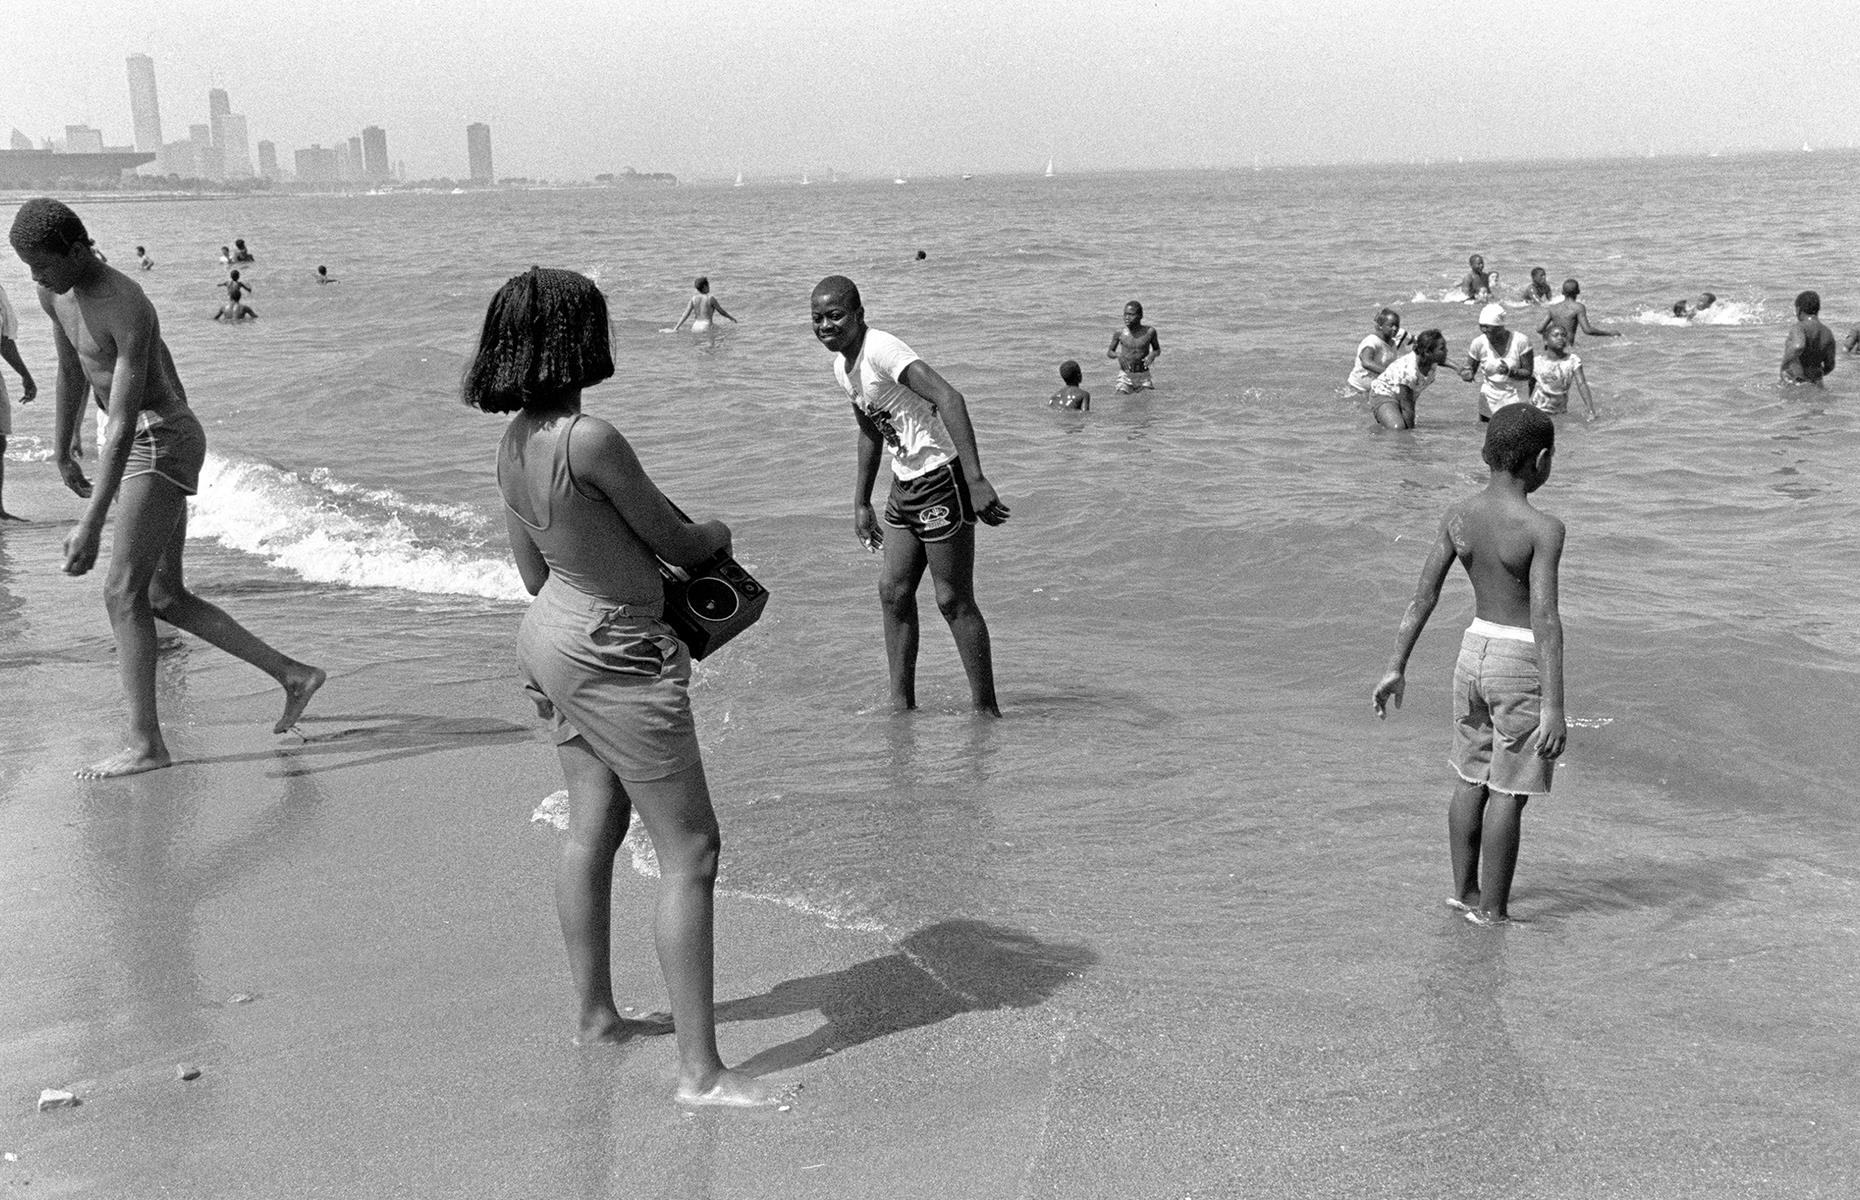 """Slide 30 of 38: It's not all about the seaside, though – America's Great Lakes have long been a vacation spot for beach bums too. In this 1987 snap, sun seekers splash in Lake Michigan at Chicago's Margaret T. Burroughs Beach (formerly 31st Beach). Now a diverse city strand, this beach was once segregated and designated for black visitors. And in contrast to the peaceful scenes shown here, a black teenager named Eugene Williams was killed in these waters, when he unknowingly drifted into a """"white zone"""", triggering the Chicago race riot of 1919. A memorial for Williams is held on the beach each year."""